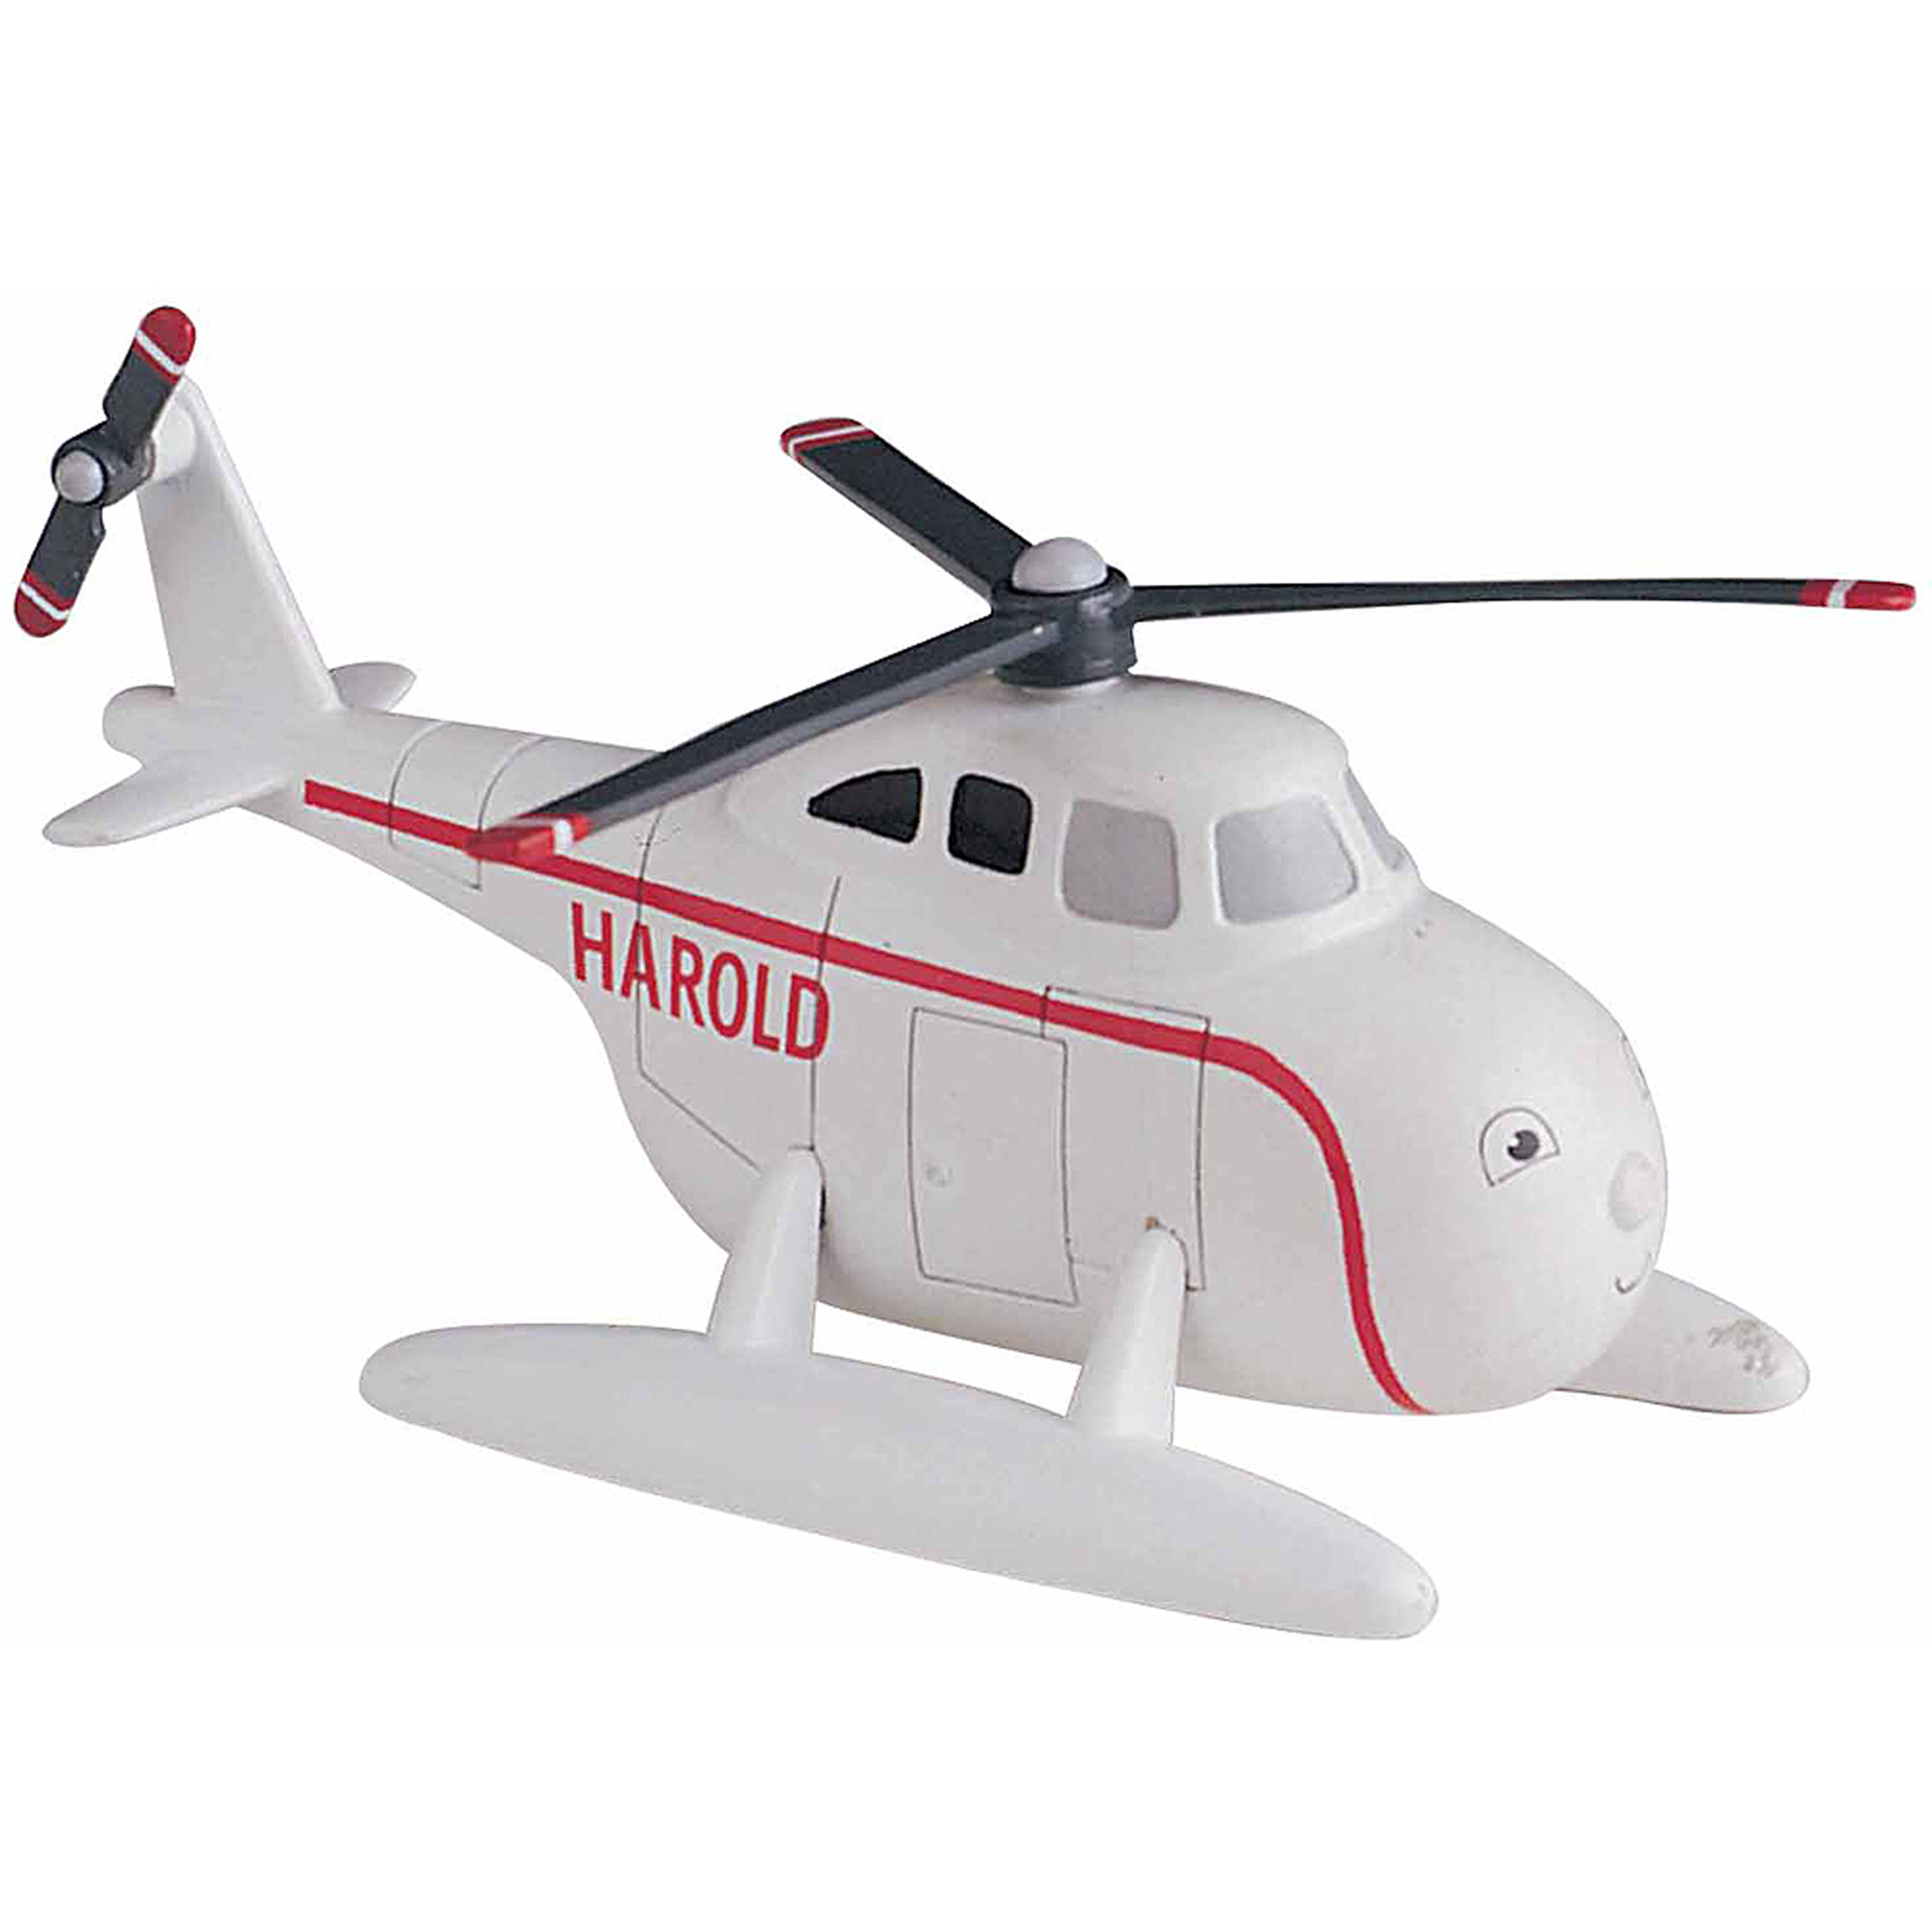 Bachmann Trains Thomas and Friends Harold The Helicopter Scenery Item, HO Scale